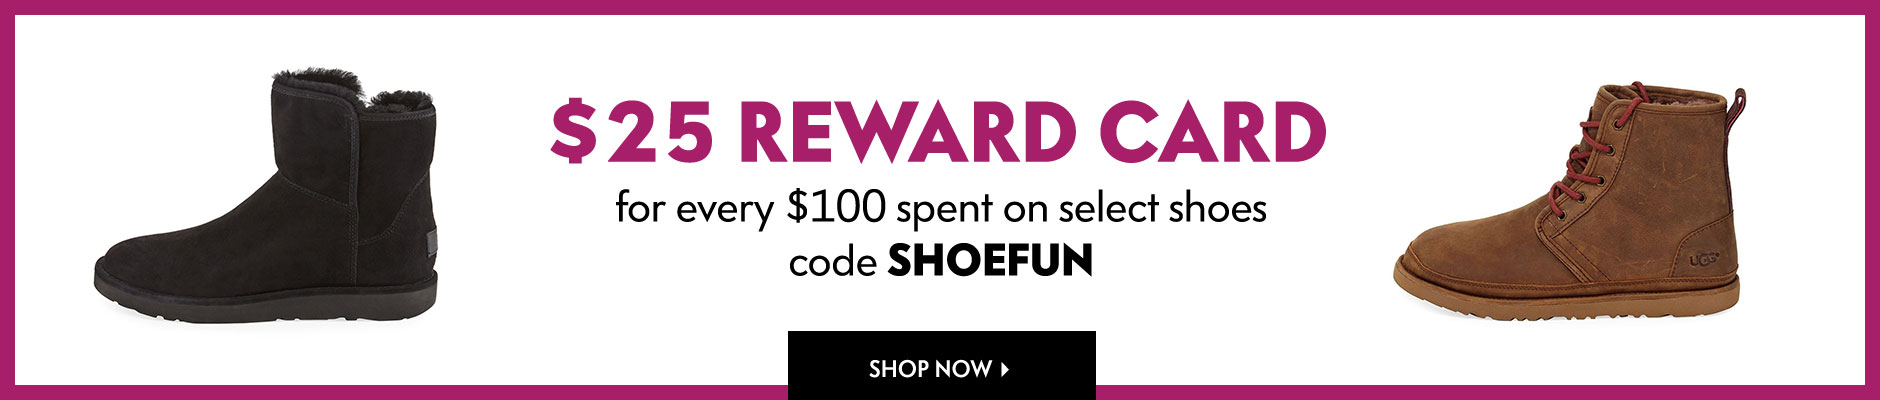 $25 Reward Card for every $100 spent on select shoes - code SHOEFUN